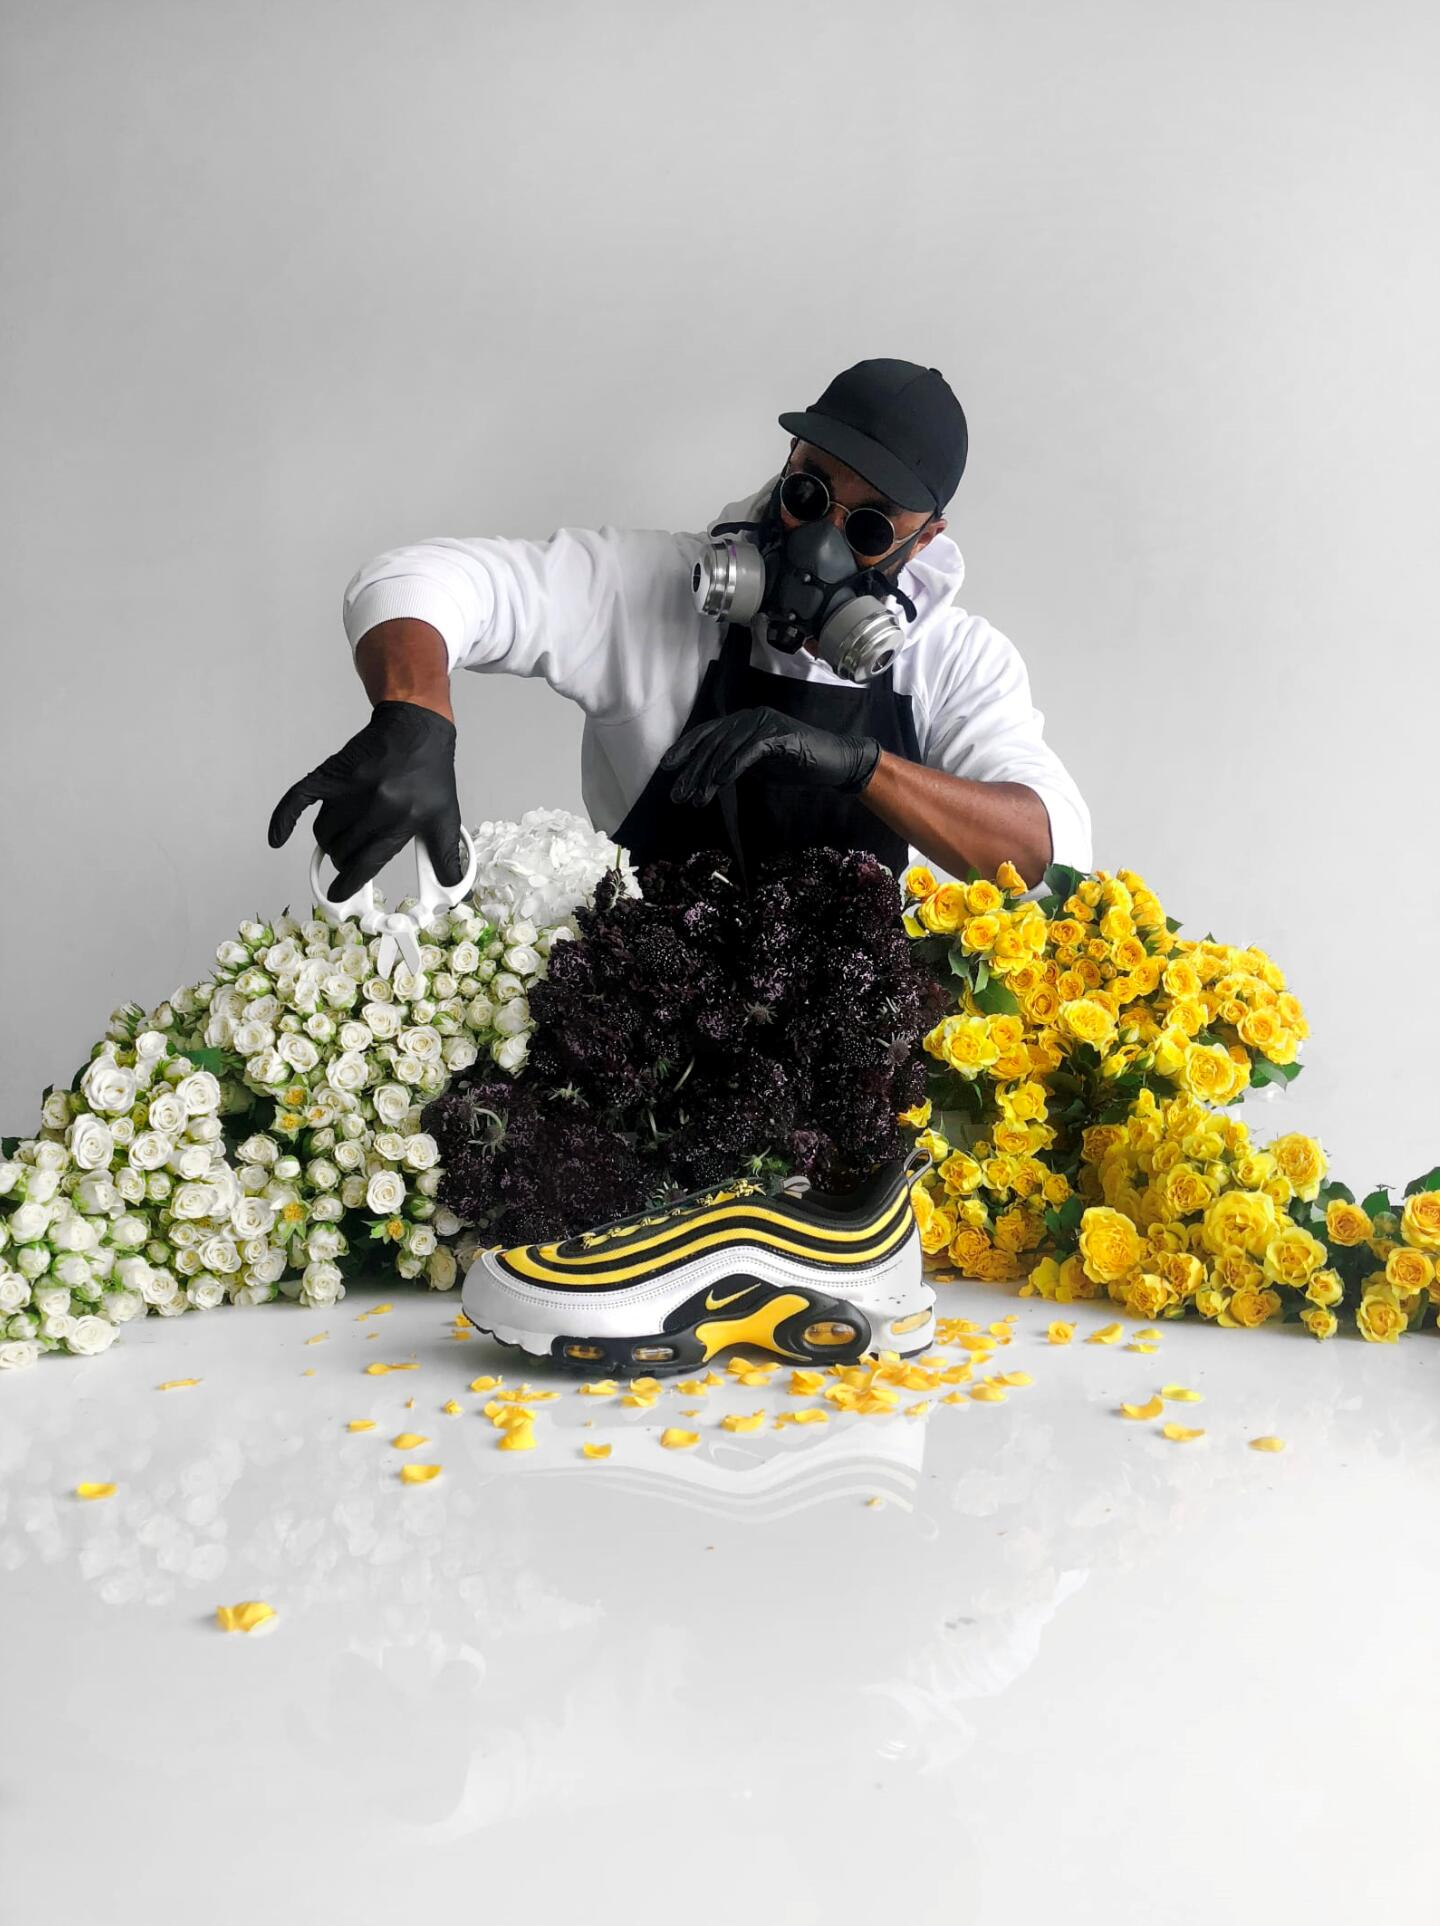 Meet the Artist Turning Flowers Into Hyped Sneakers